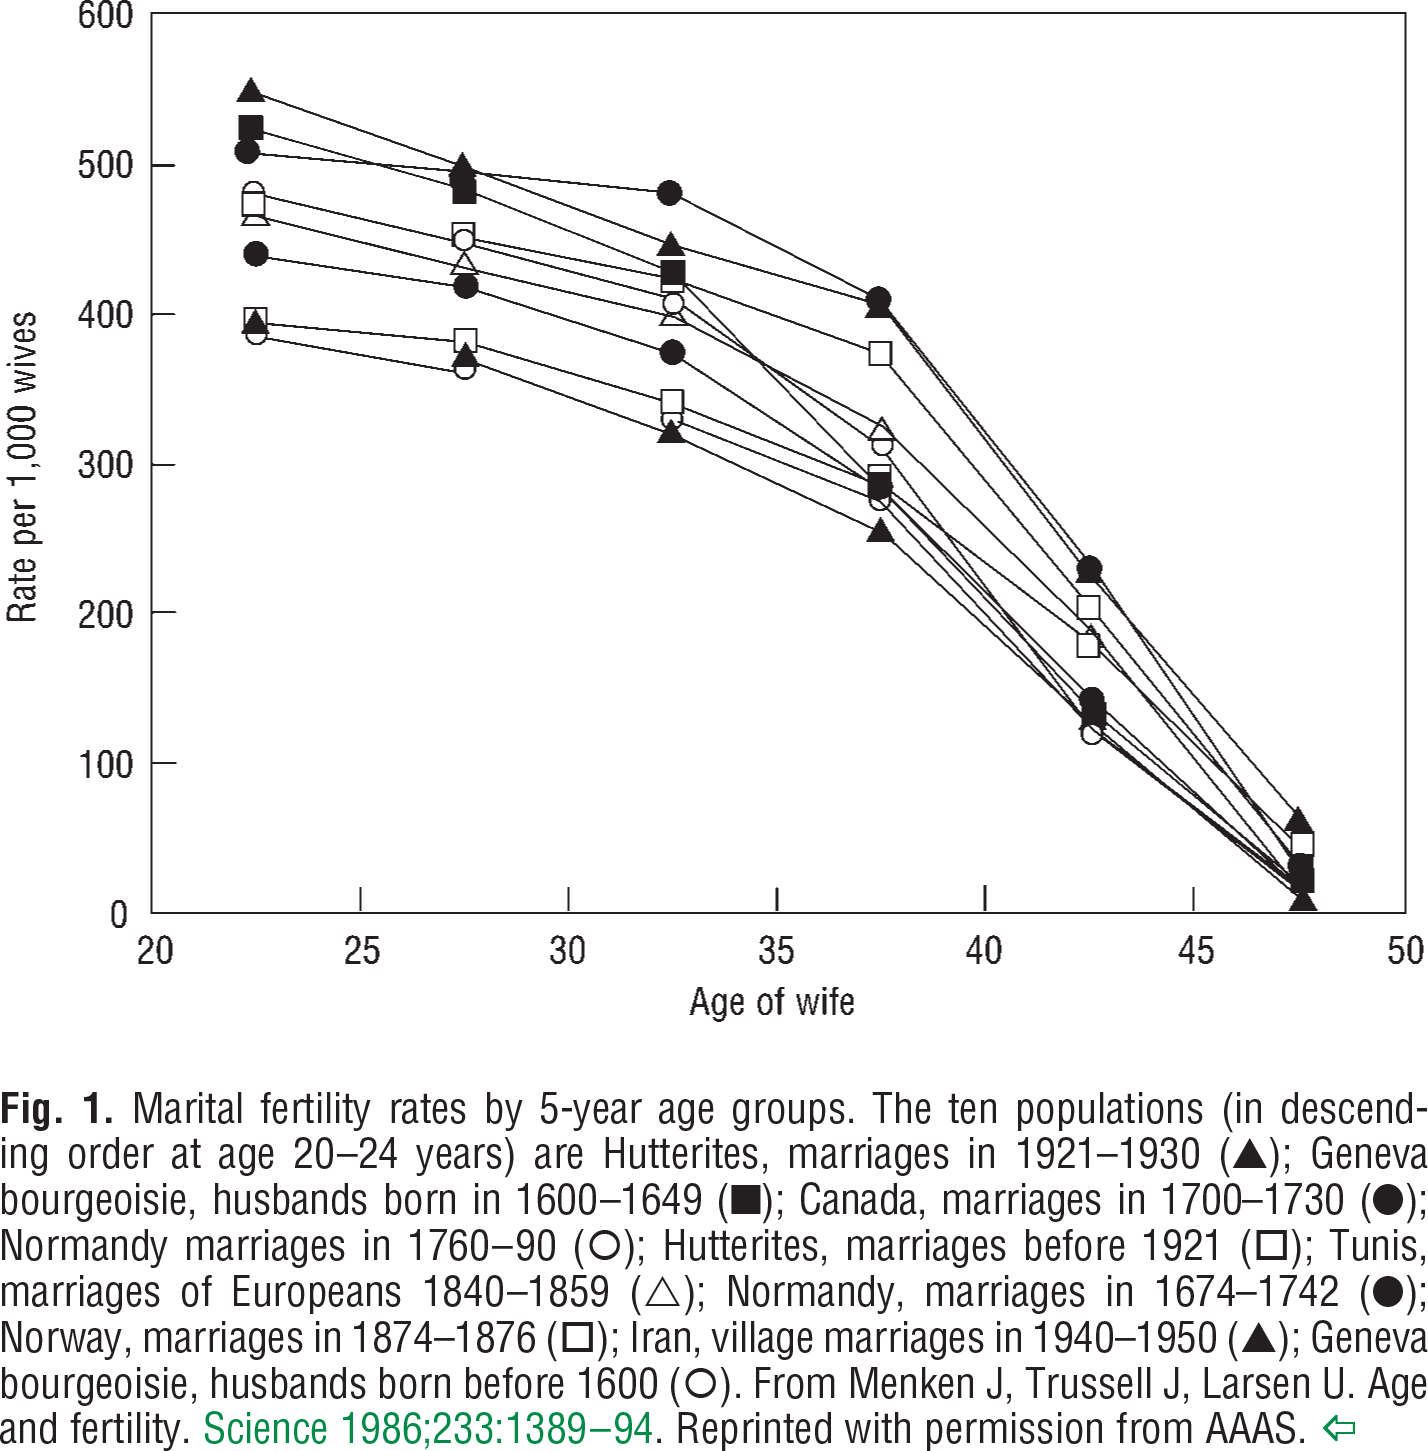 Fig. 1. Marital ∆(in descending order at age 20–24 years) are Hutterites, marriages in 1921–1930 (▲); Geneva bourgeoisie, husbands born in 1600–1649 (■); Canada, marriages in 1700–1730 (●); Normandy marriages in 1760–90 (); Hutterites, marriages before 1921 (□); Tunis, marriages of Europeans 1840–1859 (∆); Normandy, marriages in 1674–1742 (●); Norway, marriages in 1874–1876 (□); Iran, village marriages in 1940–1950 (▲); Geneva bourgeoisie, husbands born before 1600 (). From Menken J, Trussell J, Larsen U. Age and fertility. Science 1986;233:1389–94. Reprinted with permission from AAAS.